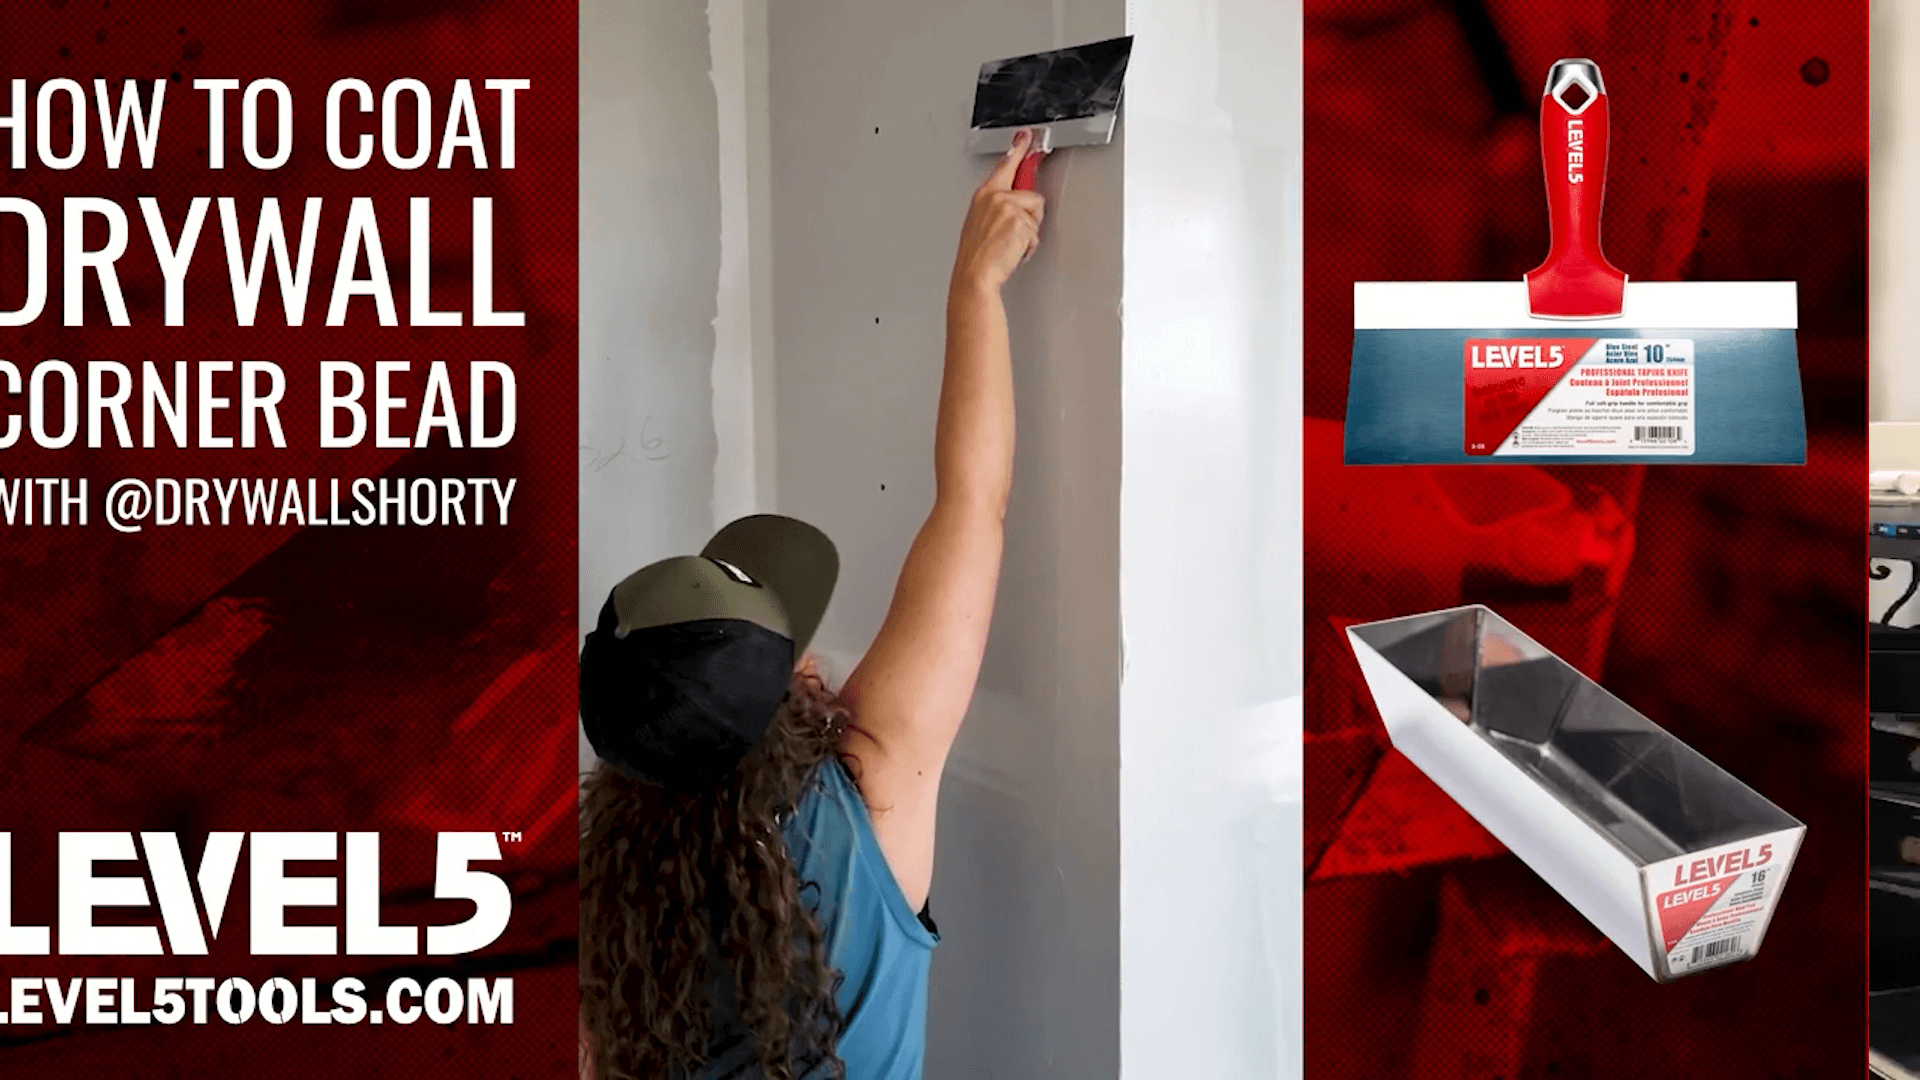 How to Coat Drywall Corner Bead with @DrywallShorty